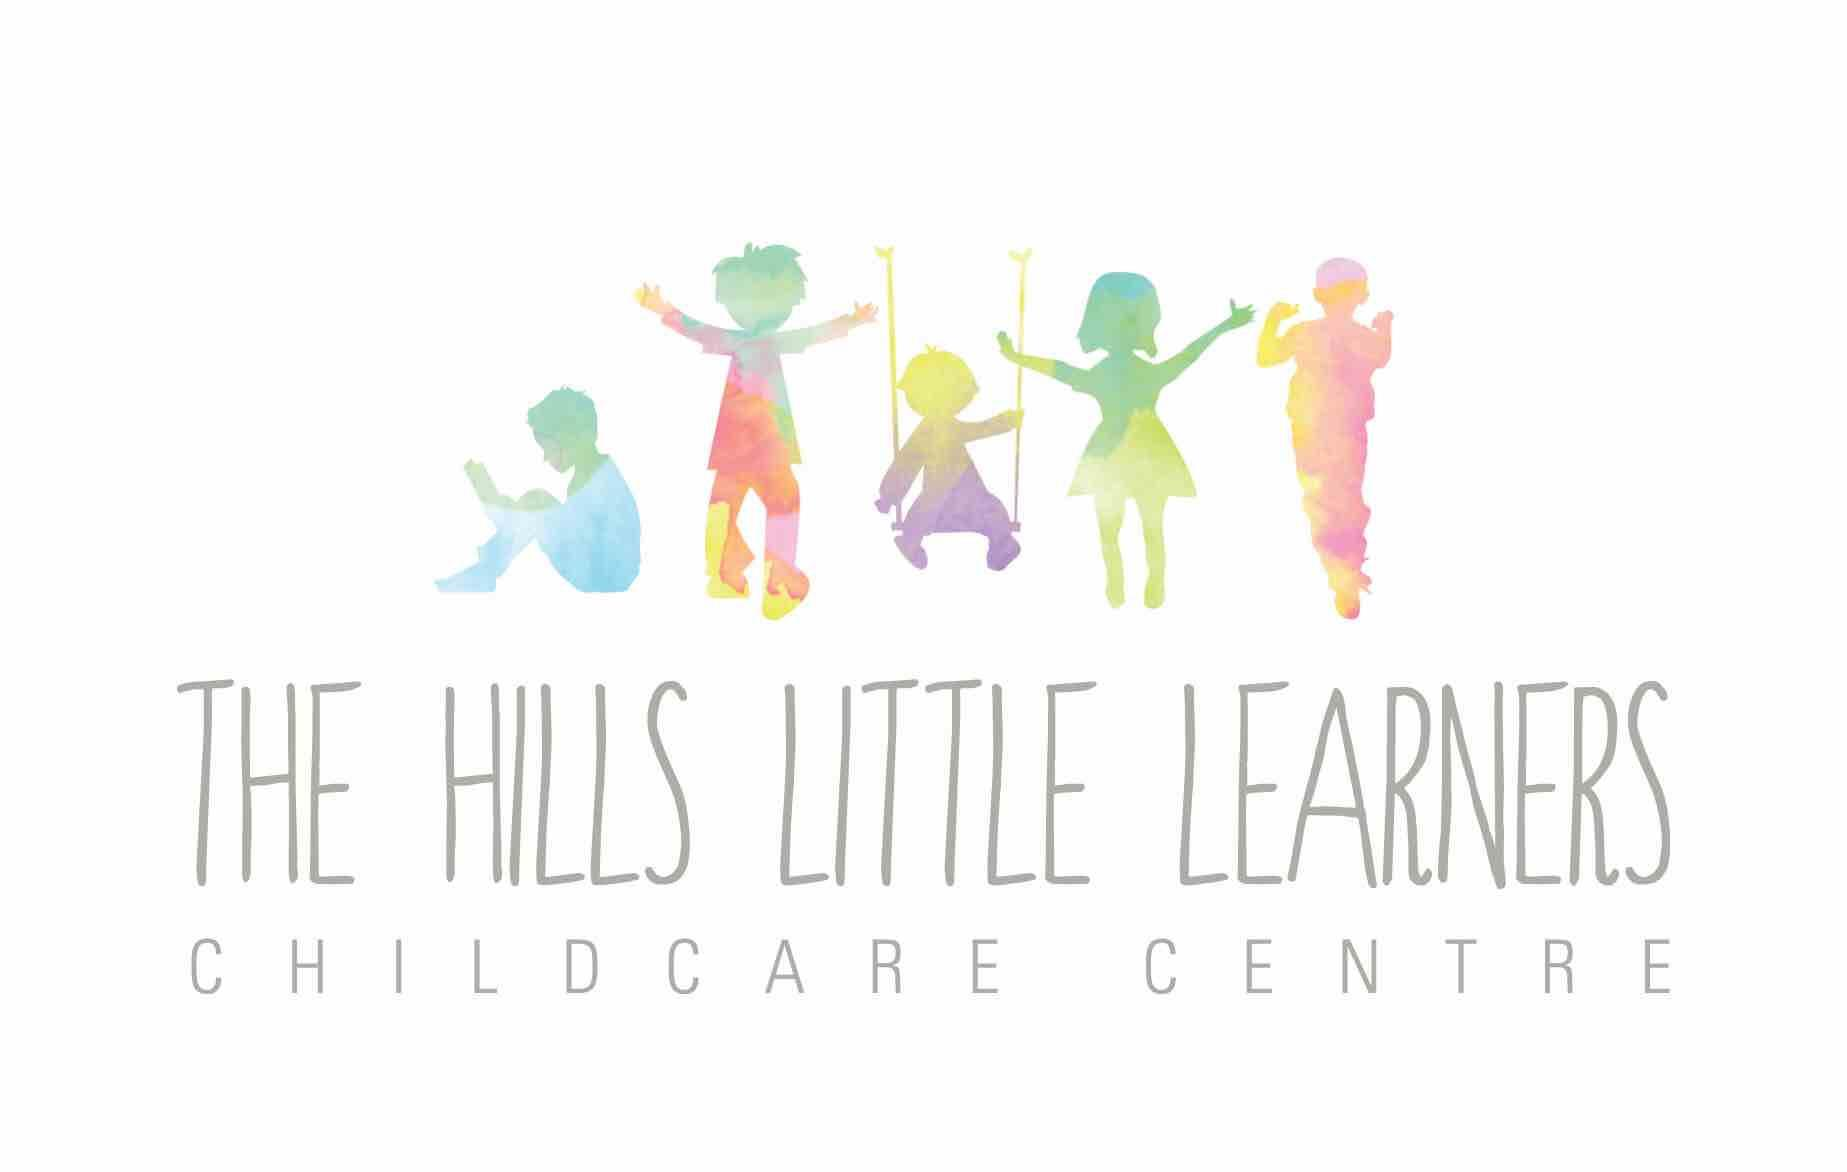 The Hills Little Learners